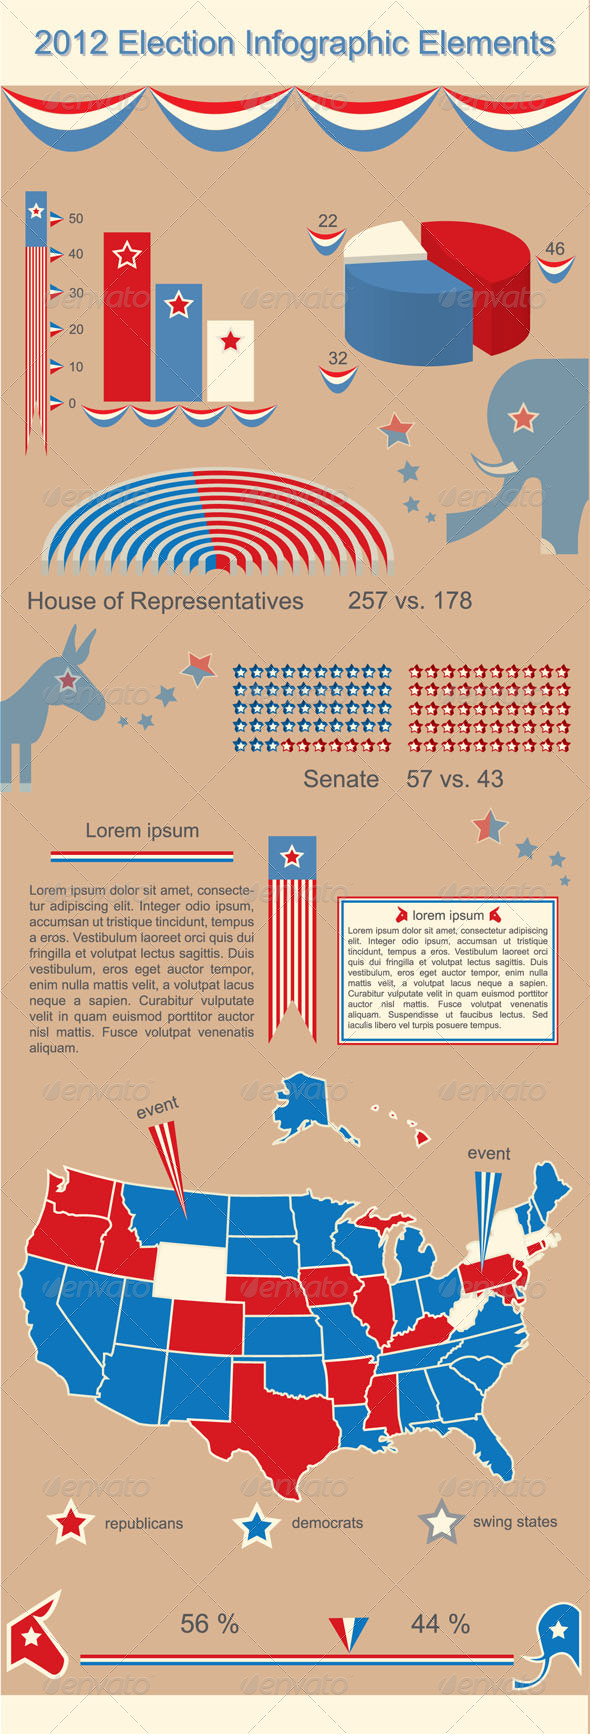 2012 Presidential Election Infographic Elements